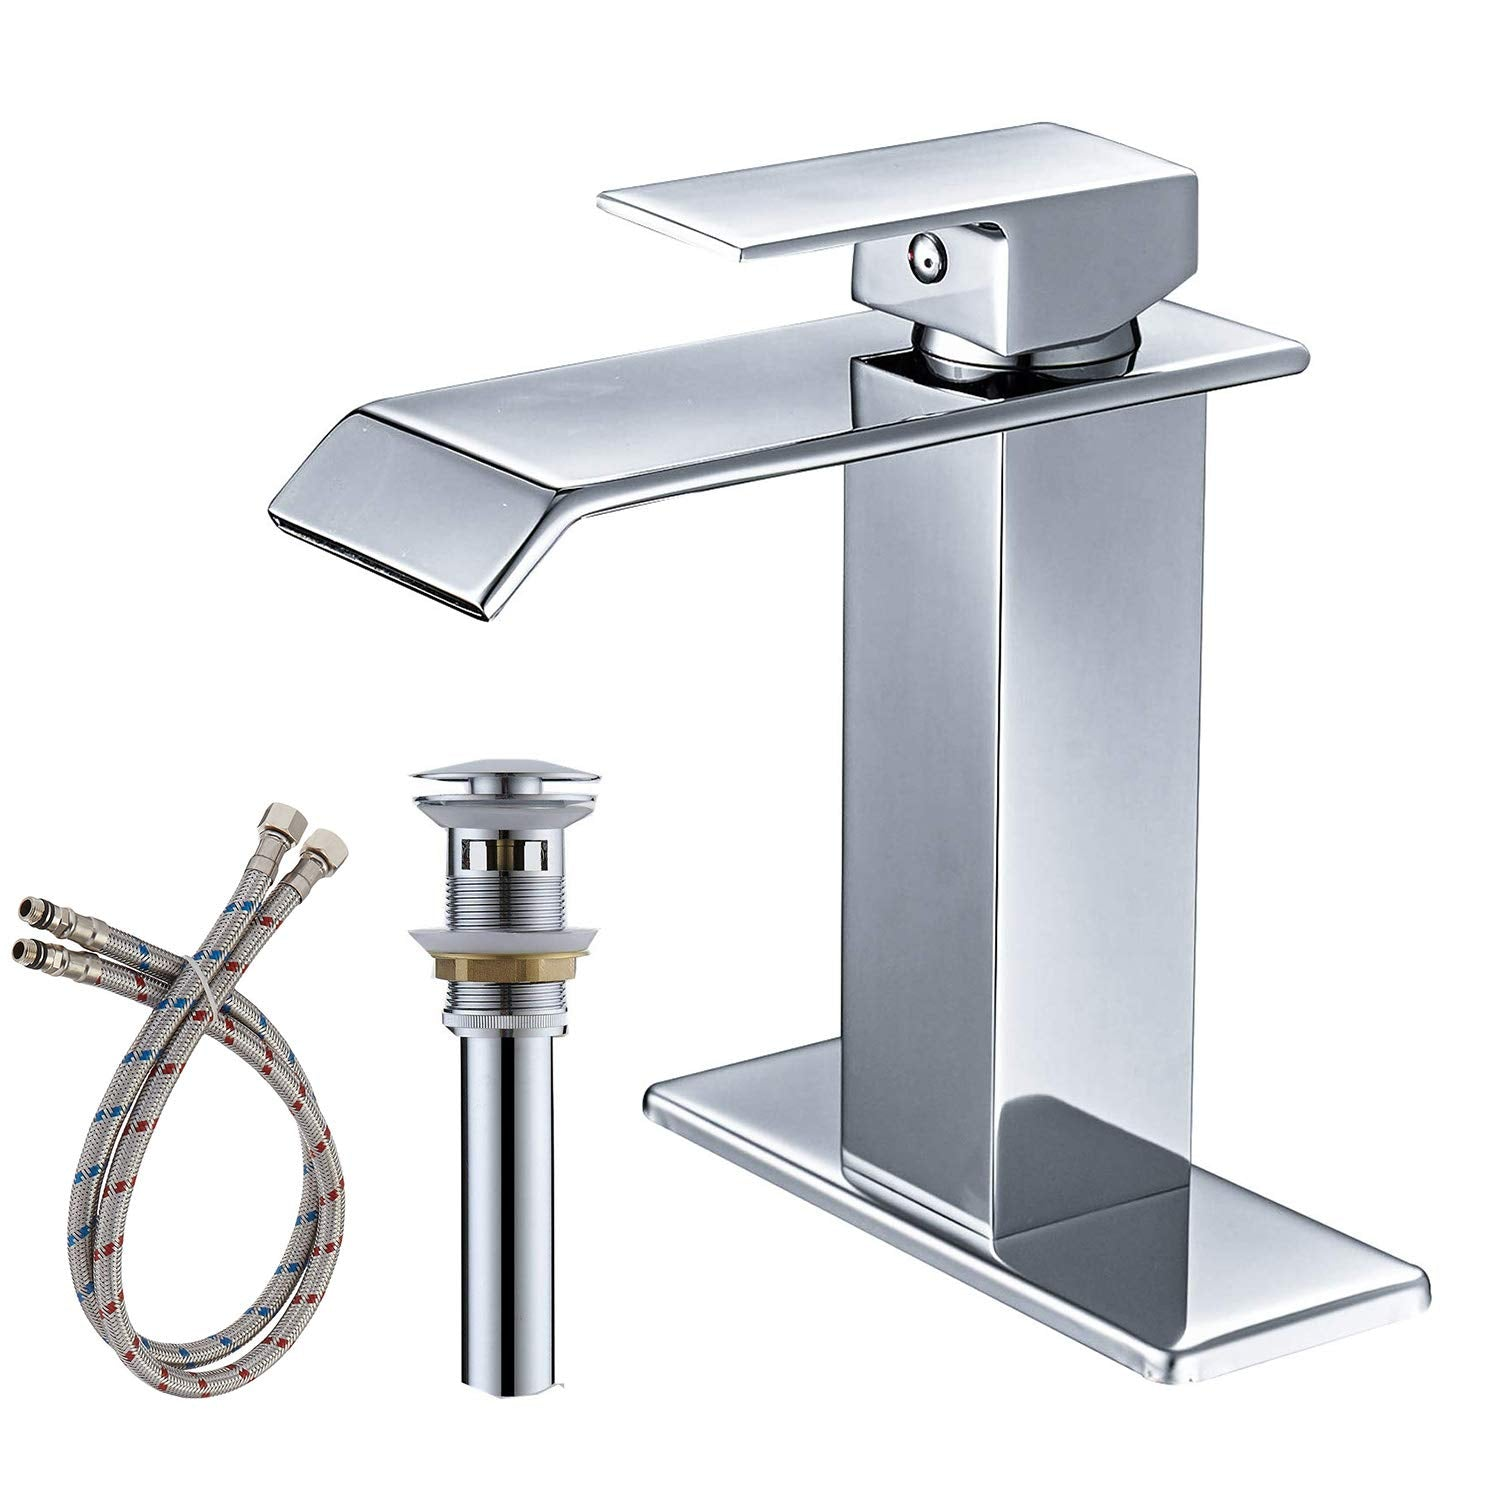 BWE A-96004 Single Handle Flat spout Waterfall Effect Bathroom Faucet (Full Kit)